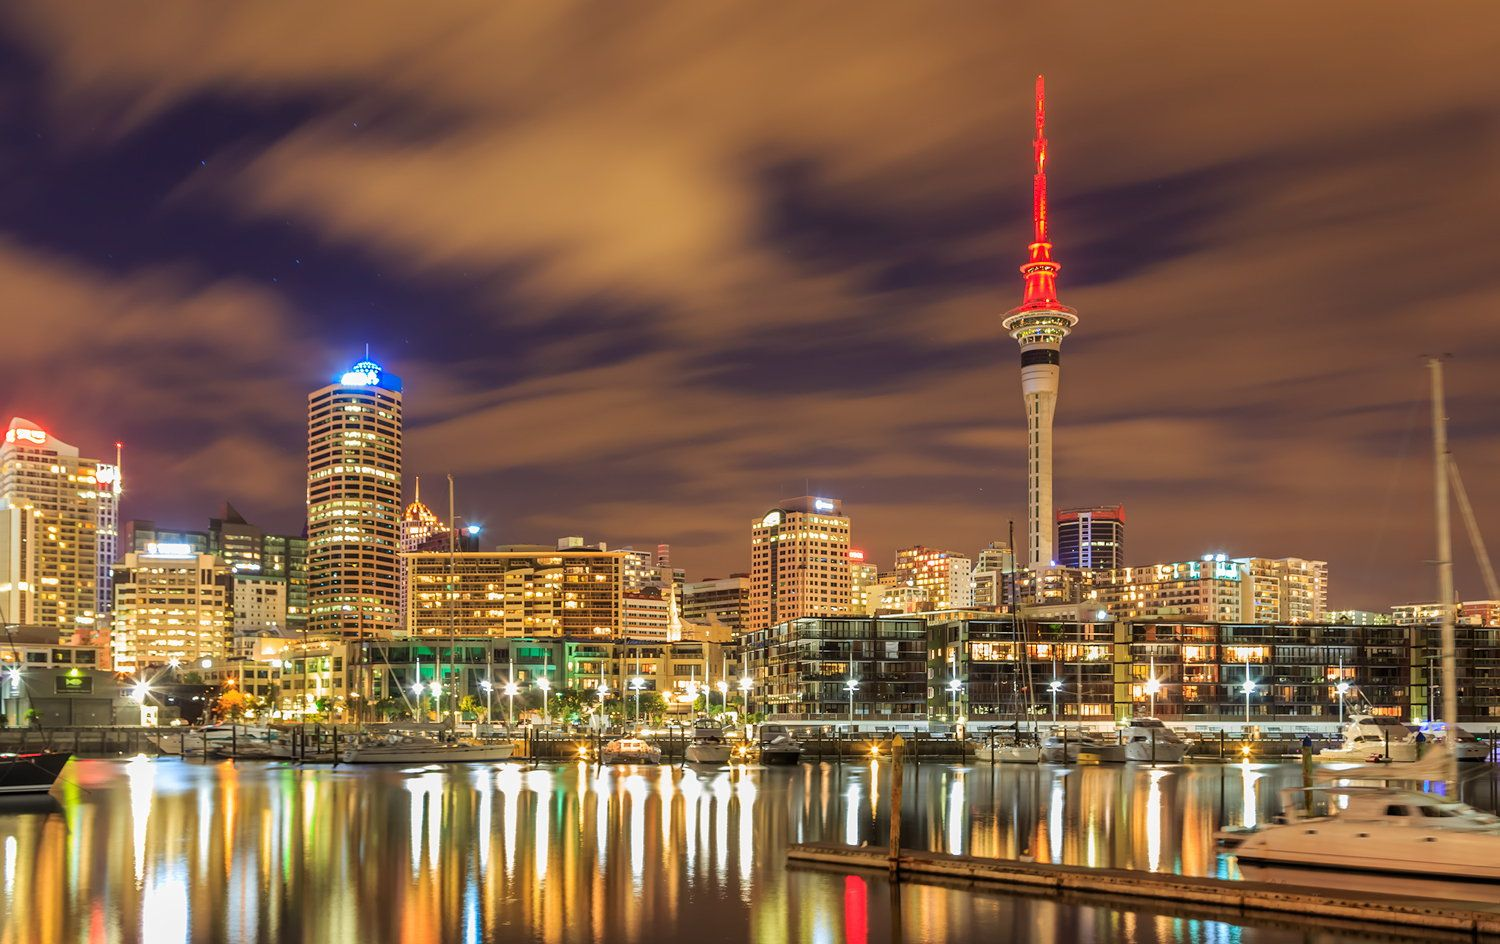 Night Time in Auckland City by Nattawut Andaris on 500px